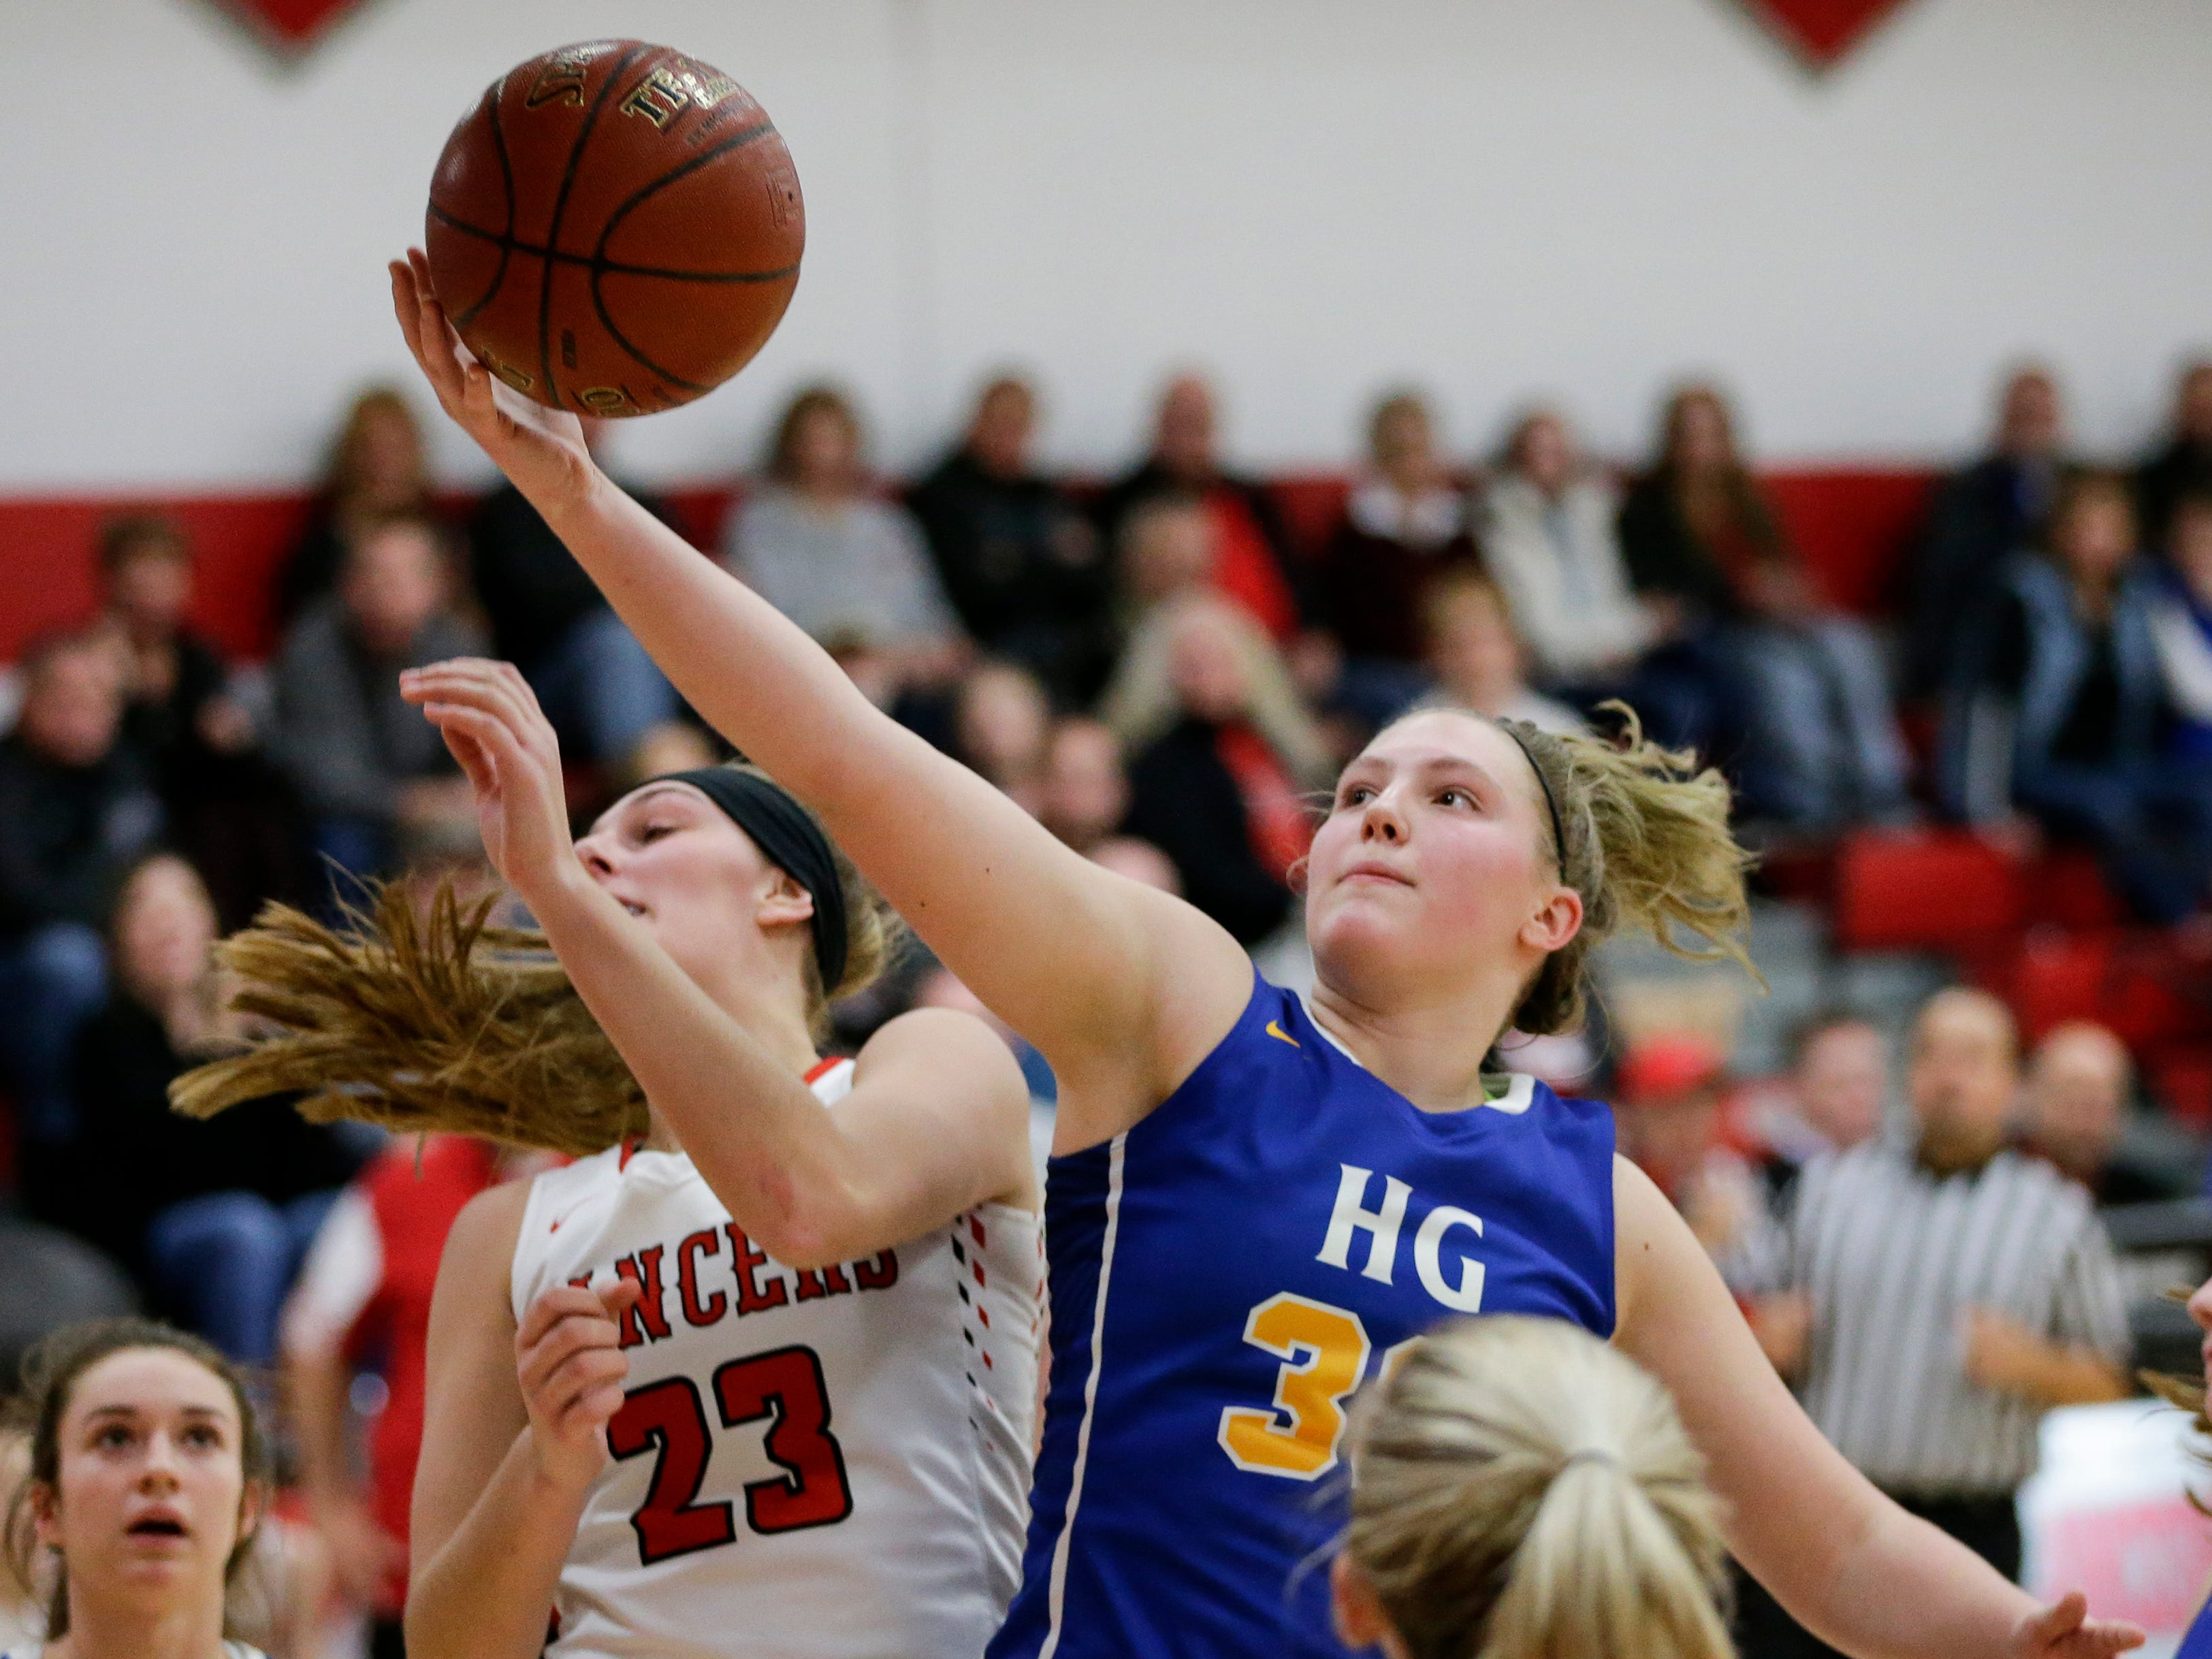 Howards Grove's Madalynn Near rebounds over Manitowoc Lutheran at Manitowoc Lutheran High School Tuesday, December 18, 2018, in Manitowoc, Wis. Joshua Clark/USA TODAY NETWORK-Wisconsin